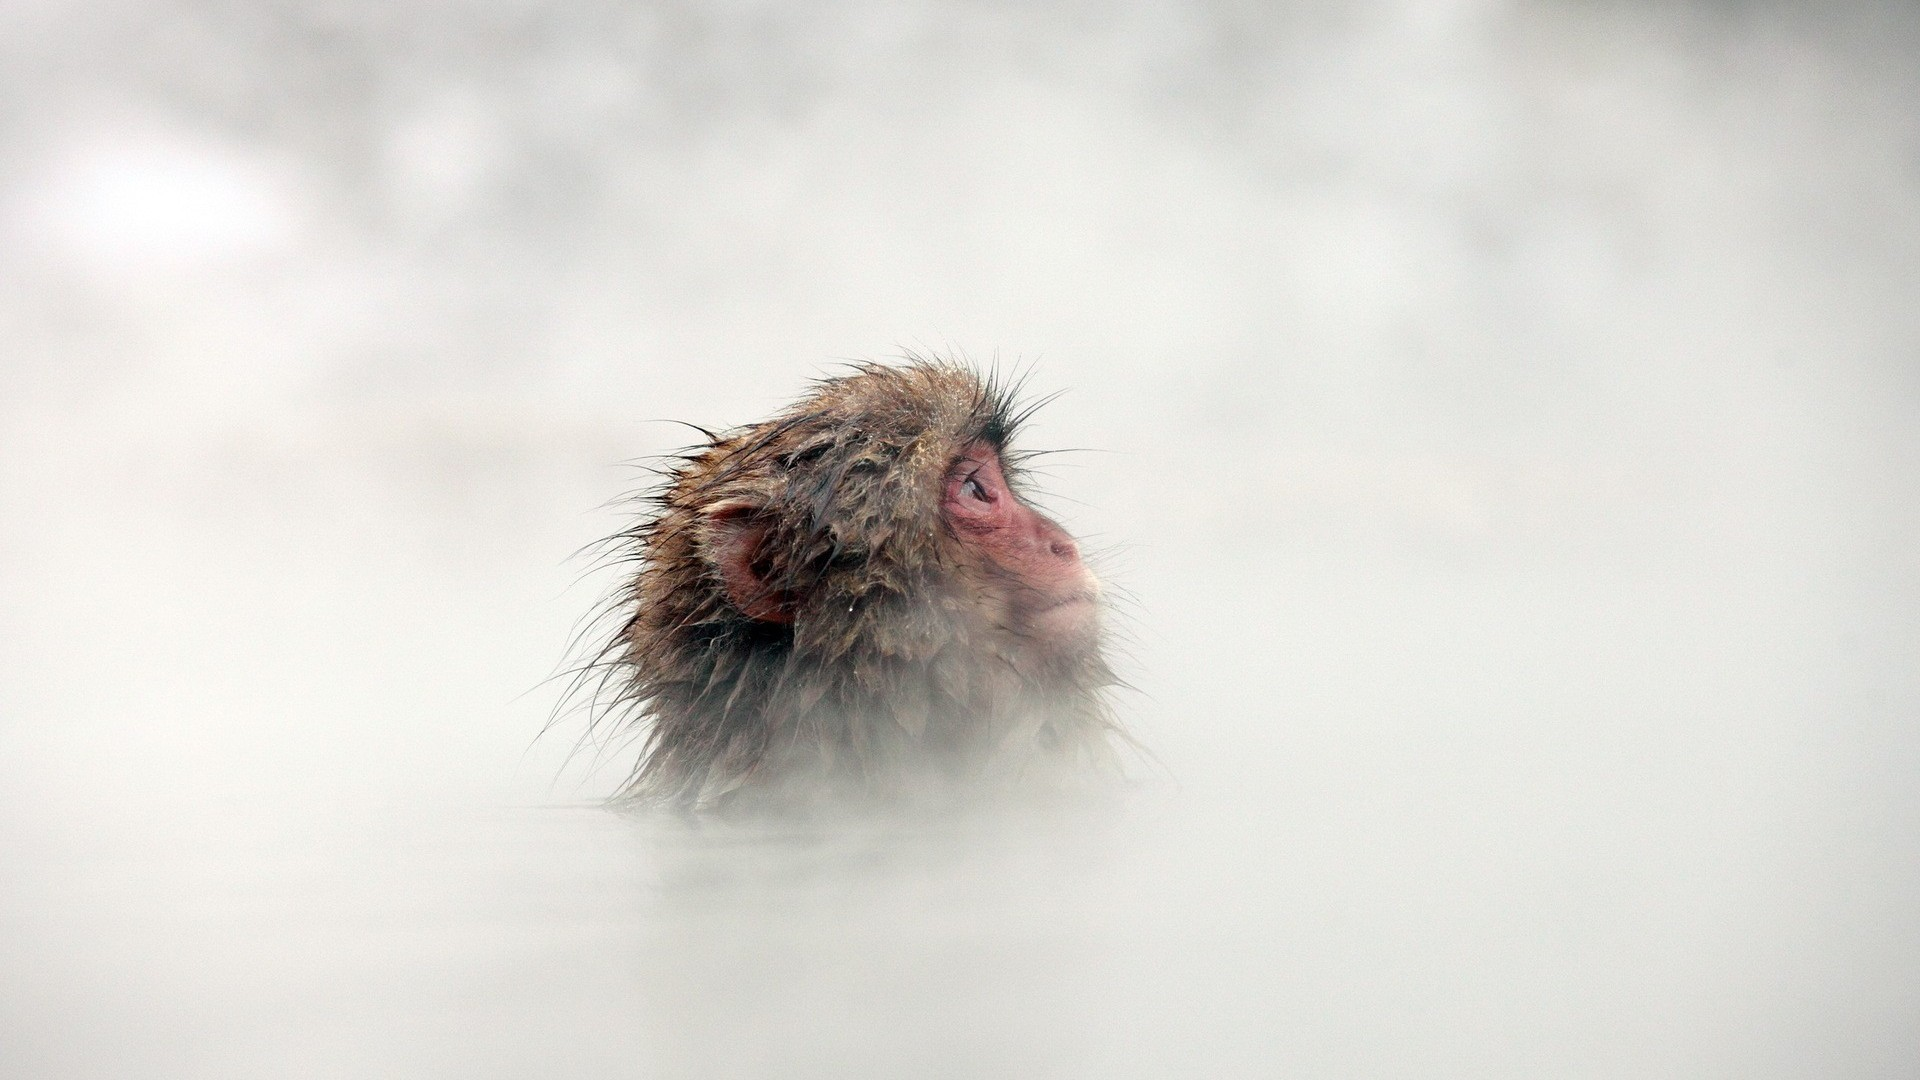 1920x1080 primate water mist animals wallpaper